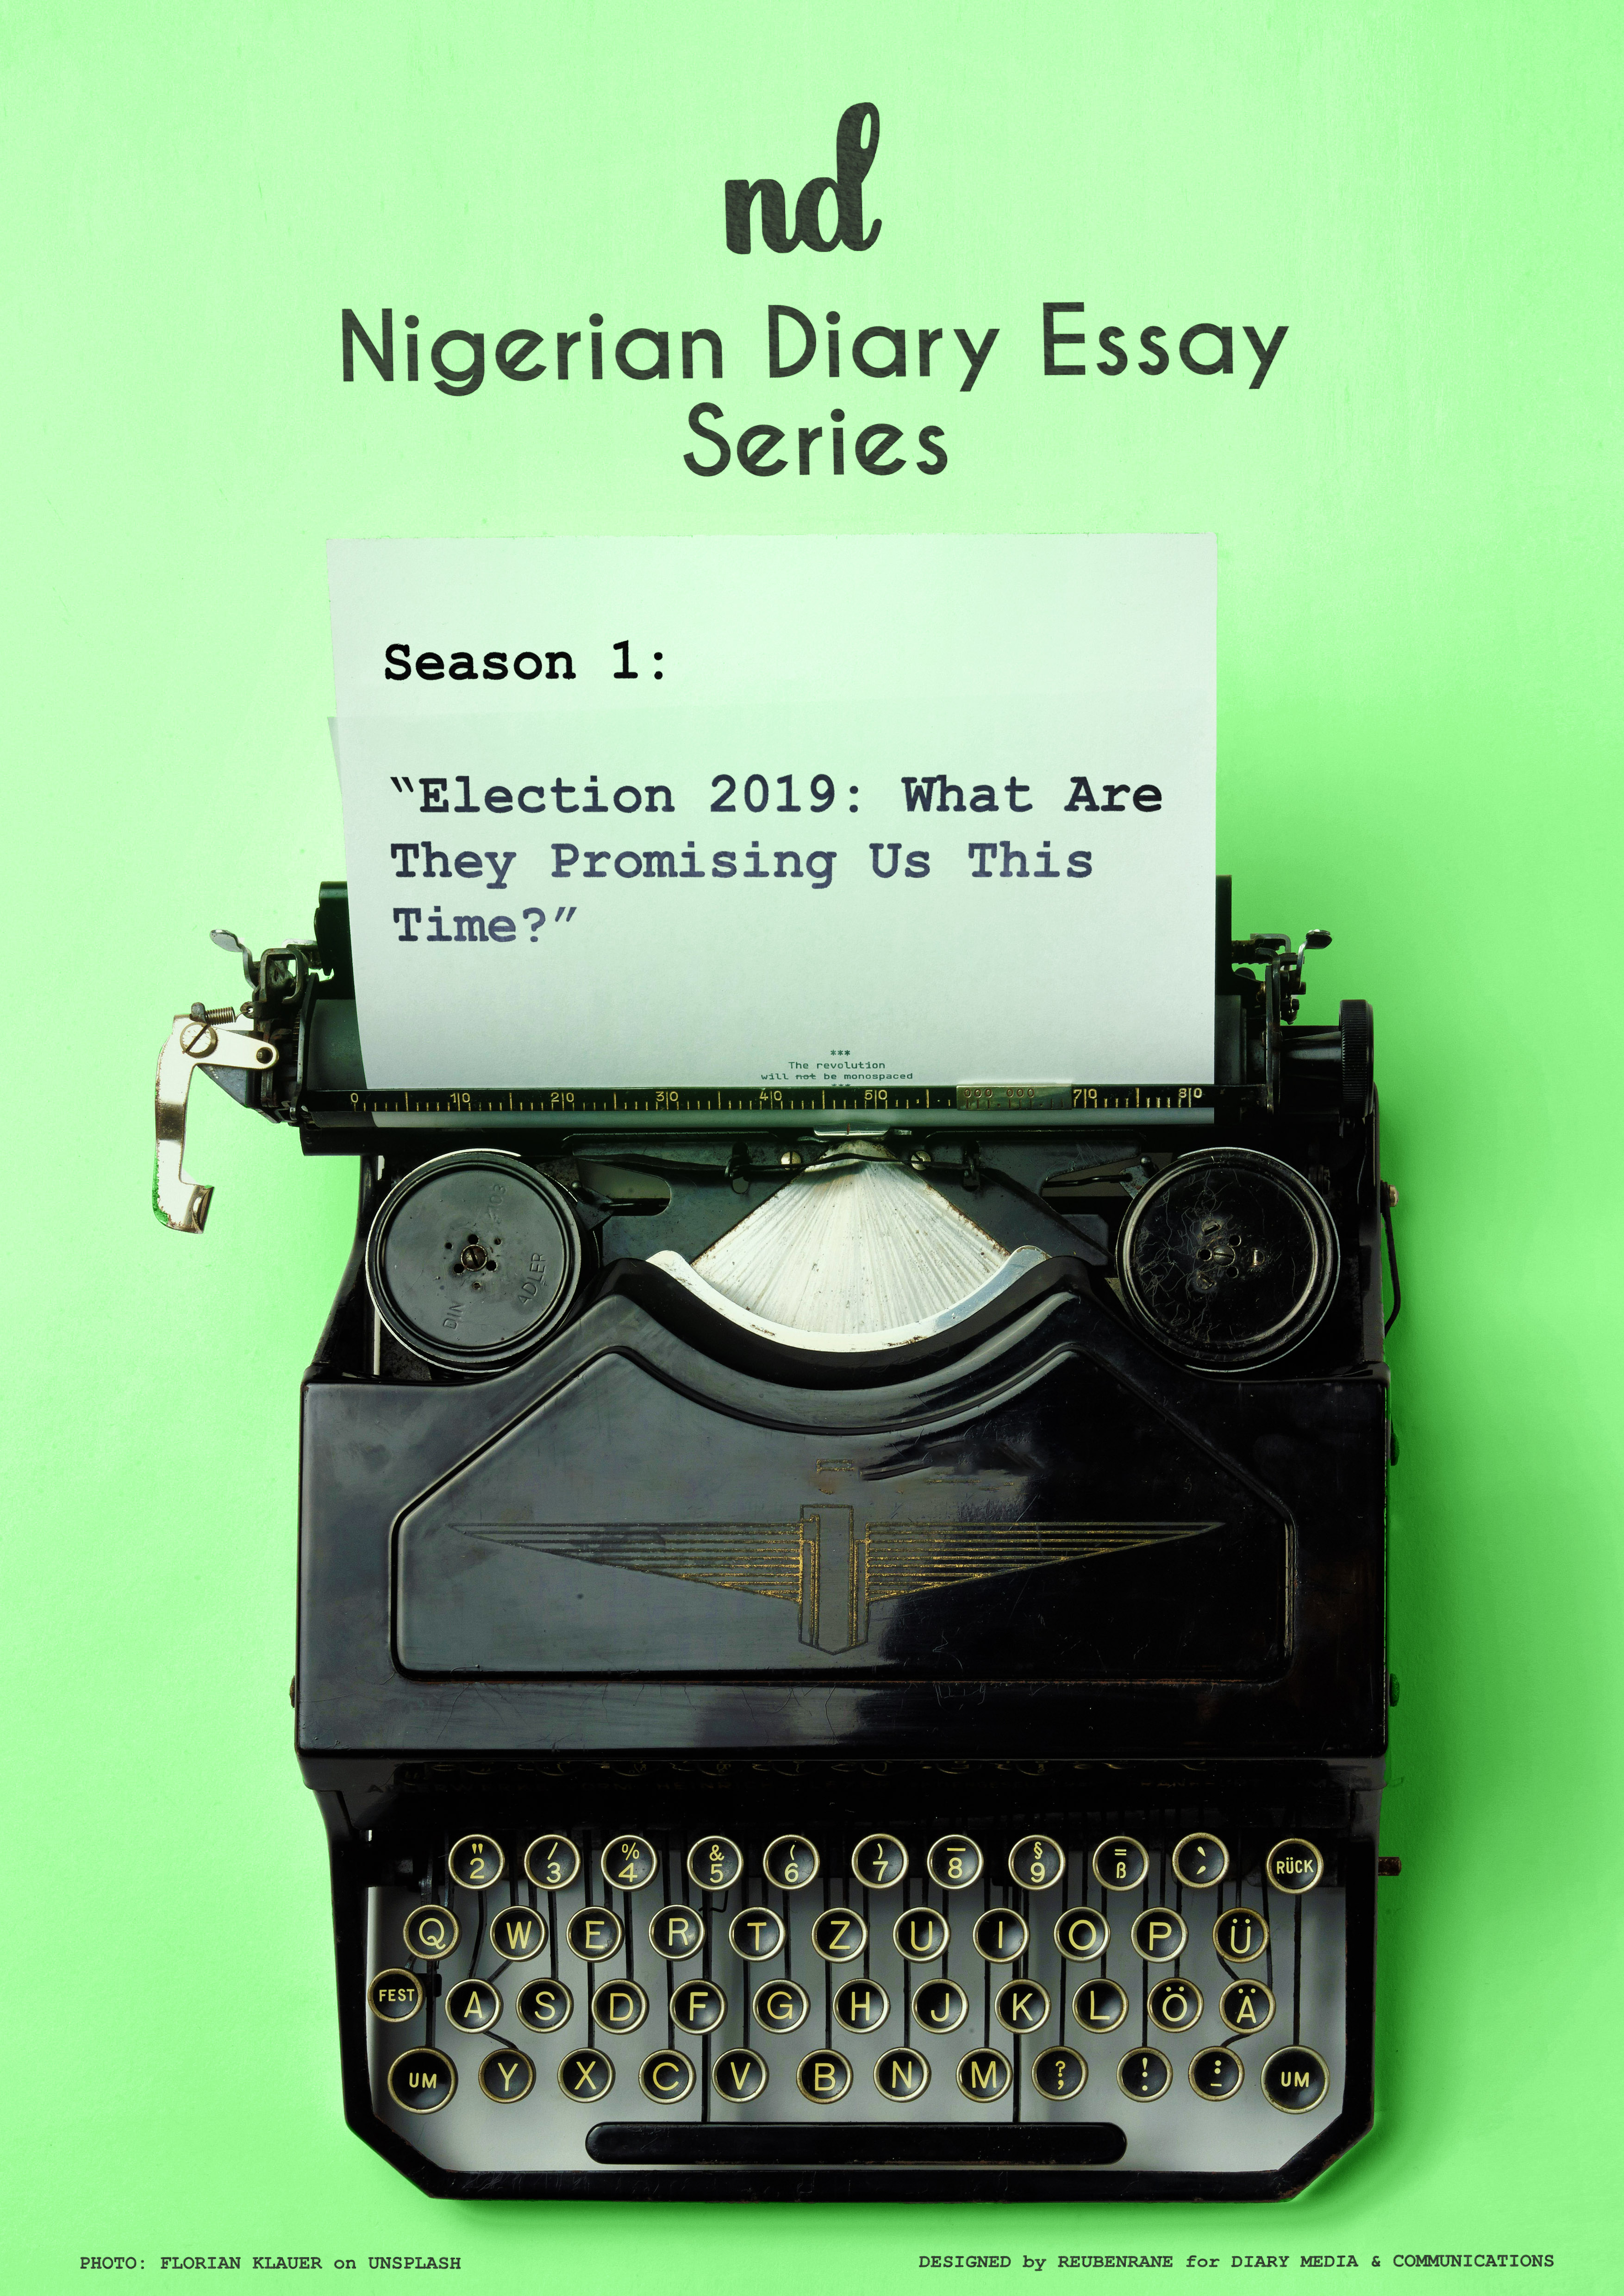 Persuasive Essay Examples High School Unveiling Nigerian Diary Essay Series Essay On Healthy Eating Habits also Personal Essay Thesis Statement Unveiling Nigerian Diary Essay Series  Nigerian Diary Thesis Example For Compare And Contrast Essay